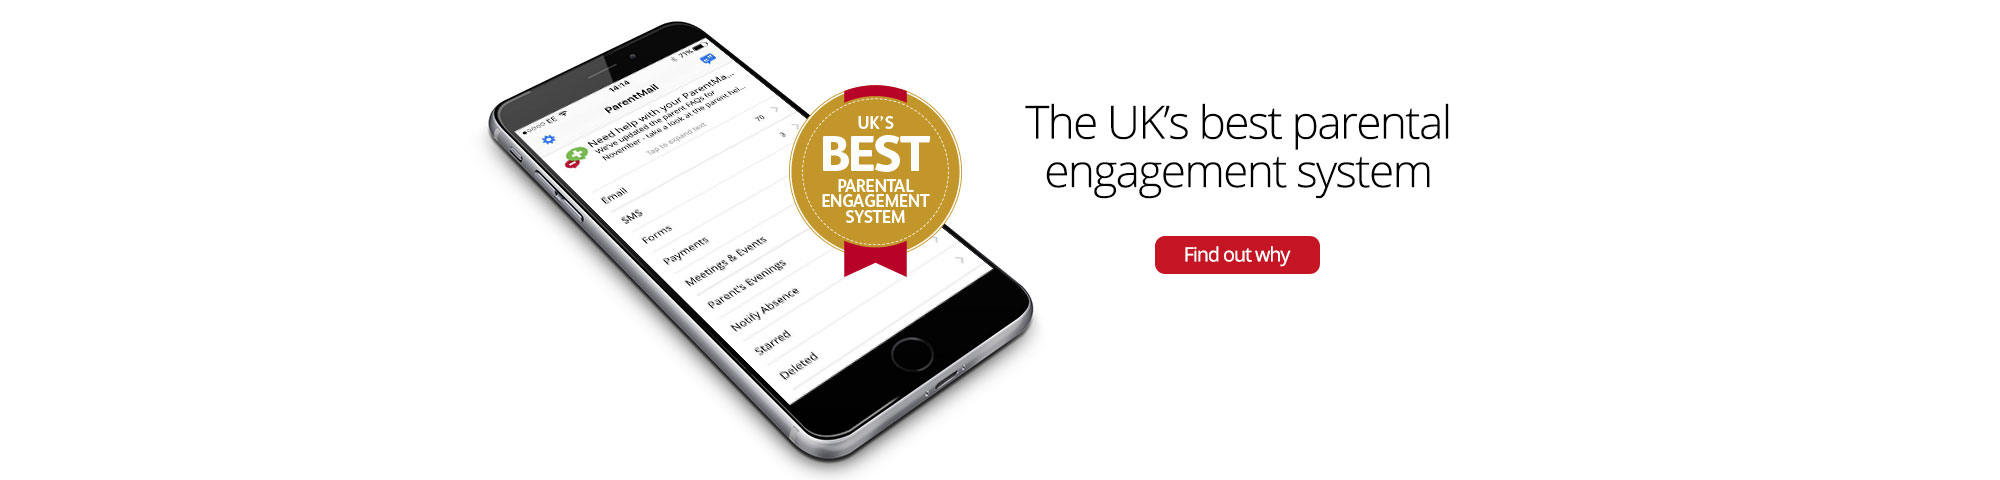 The UK's best parentalengagement system - Find out why